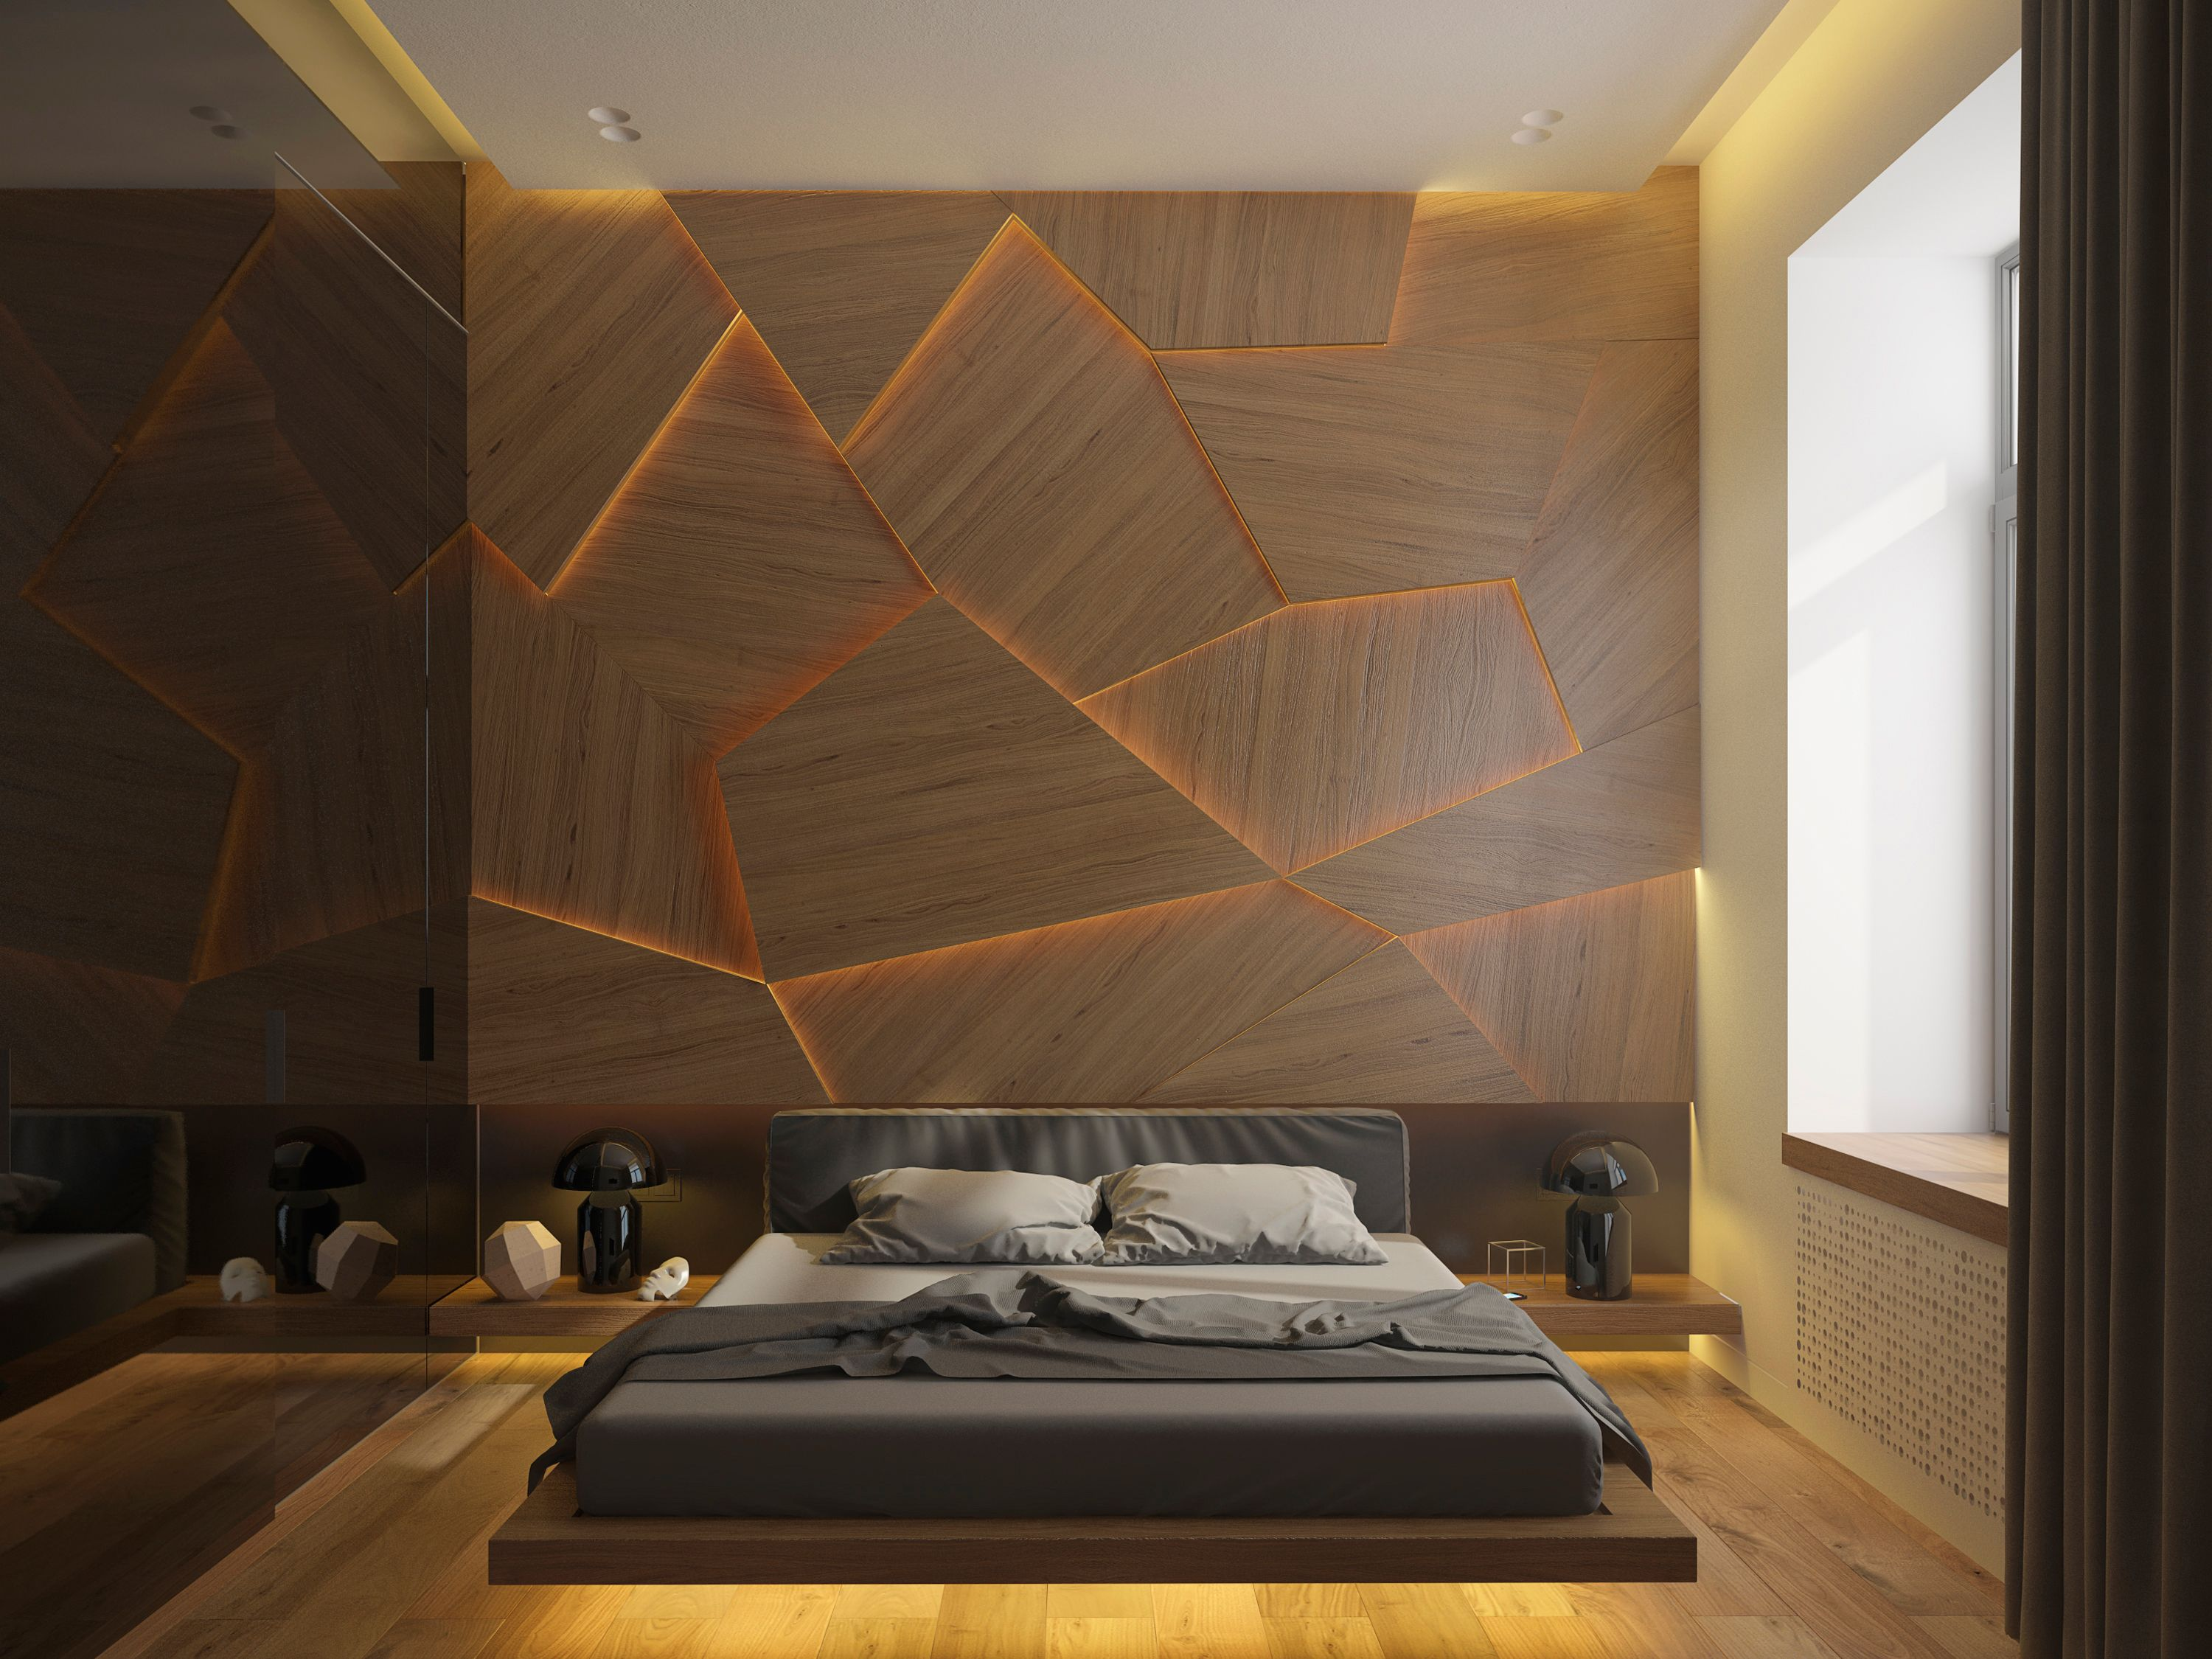 Bedrooms Wall Designs Httpb3Dddrumediagallery_Images561Cfac4E810E